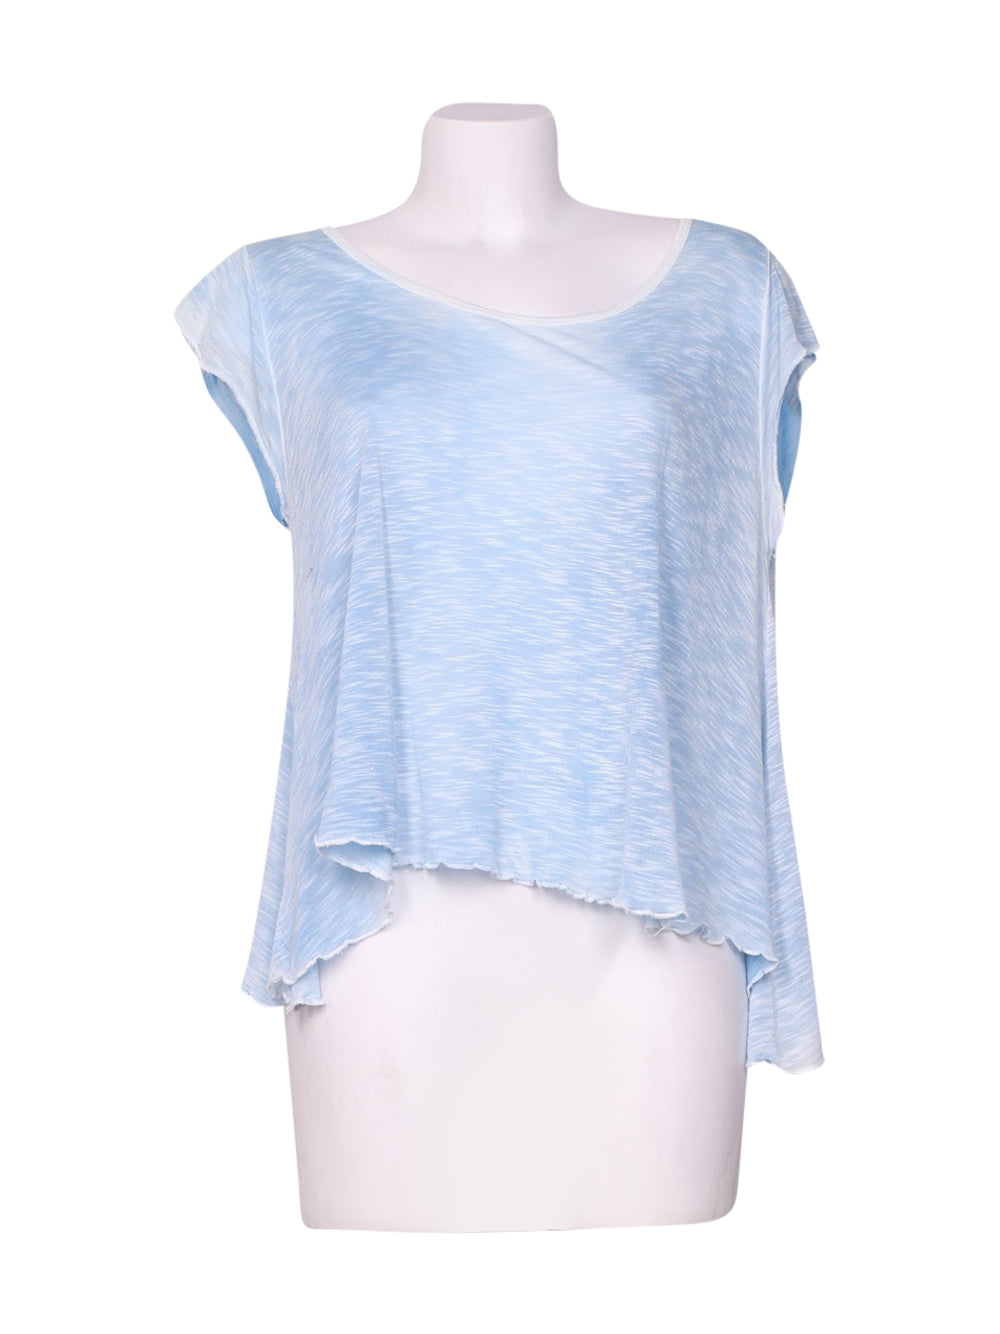 Front photo of Preloved St. Diego Light-blue Woman's sleeveless top - size 10/M